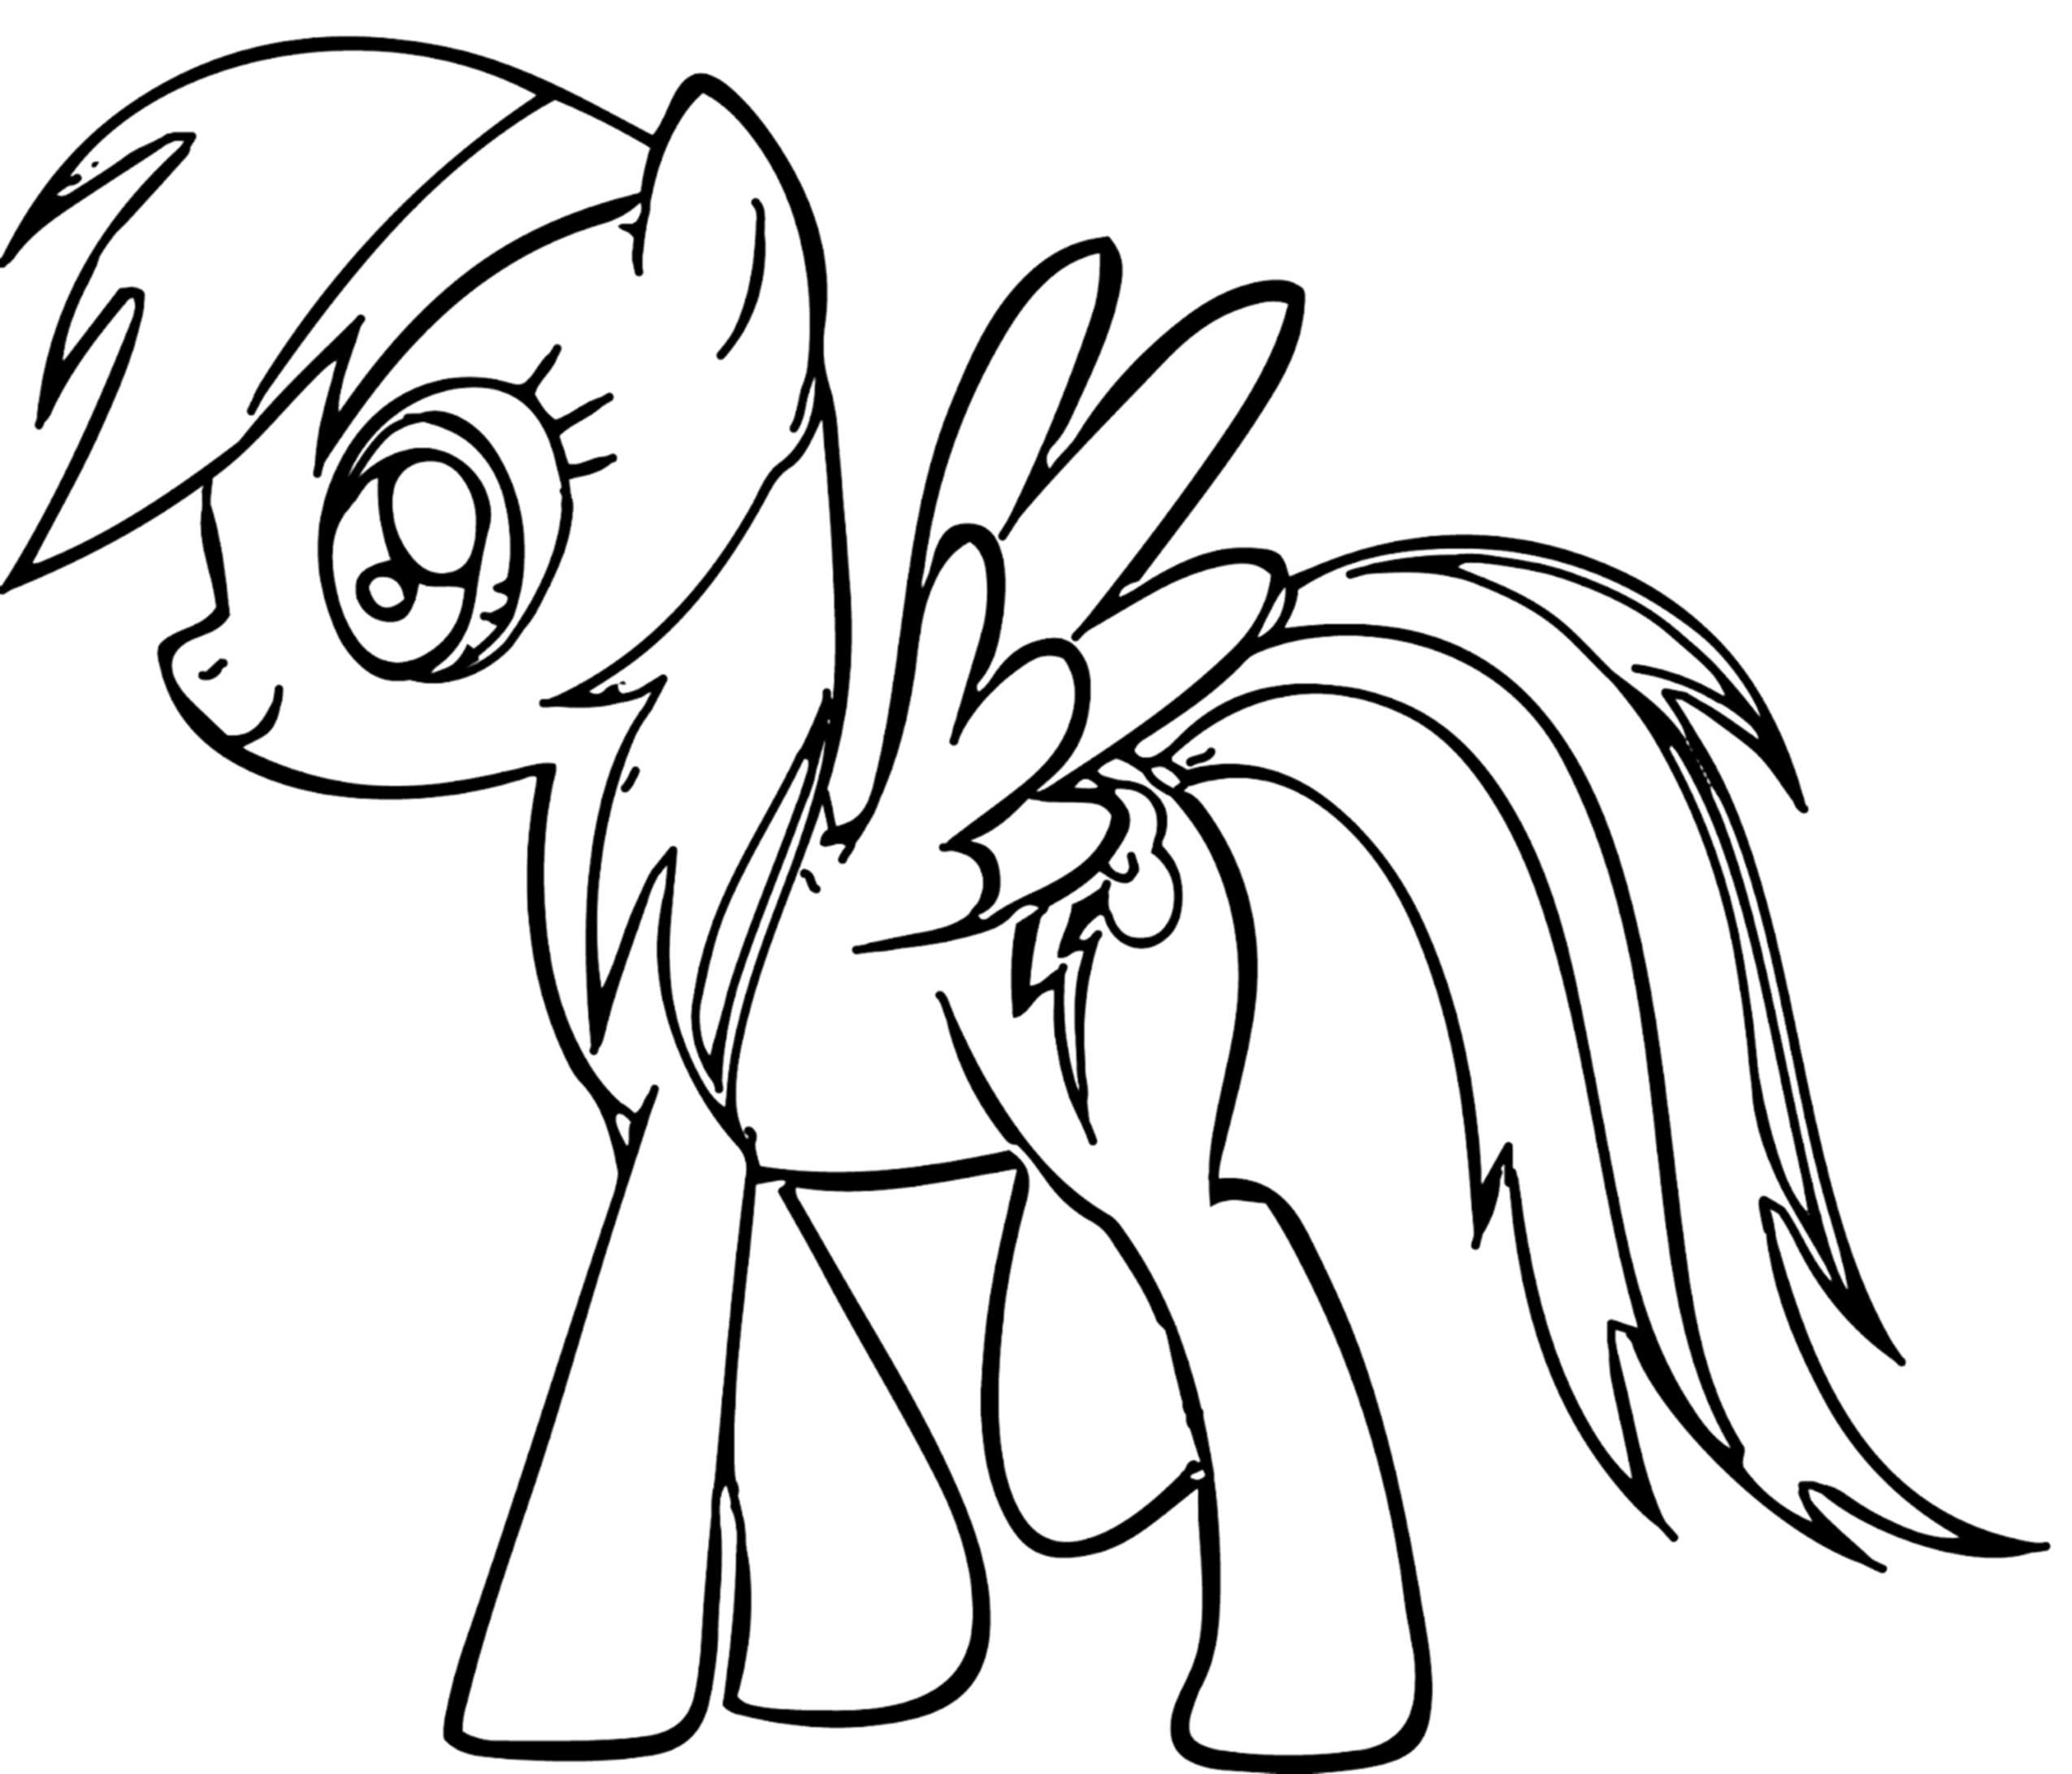 Rainbow Dash Coloring Pages Best Coloring Pages For Kids Coloring Pages For My Pony Rainbow Dash